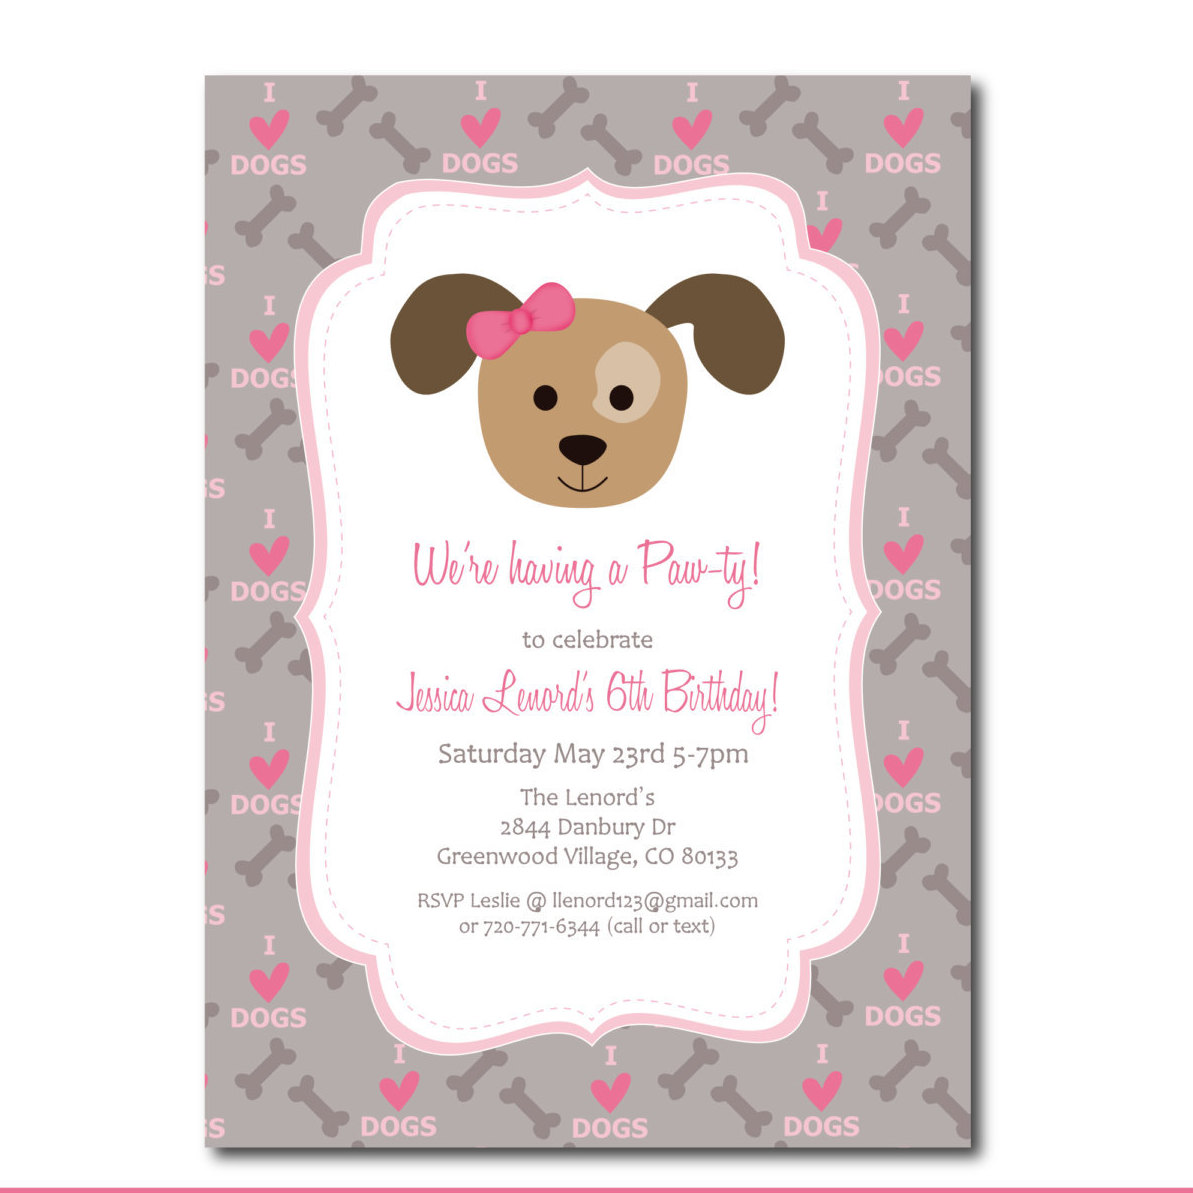 Puppy Party Invitation With Editable Text Dog Party By Punkyprep